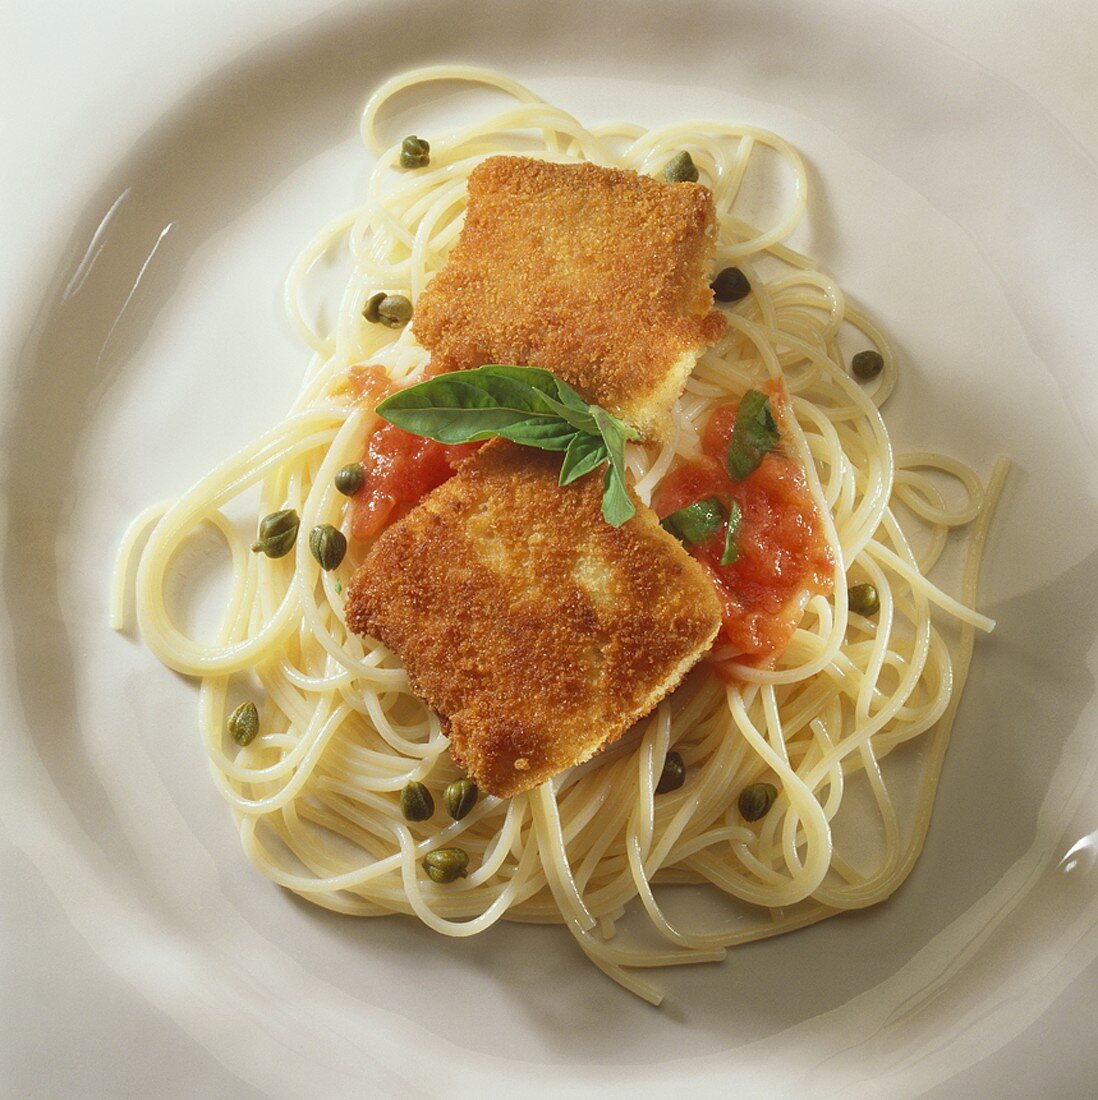 Fillet of sturgeon with capers on spaghetti